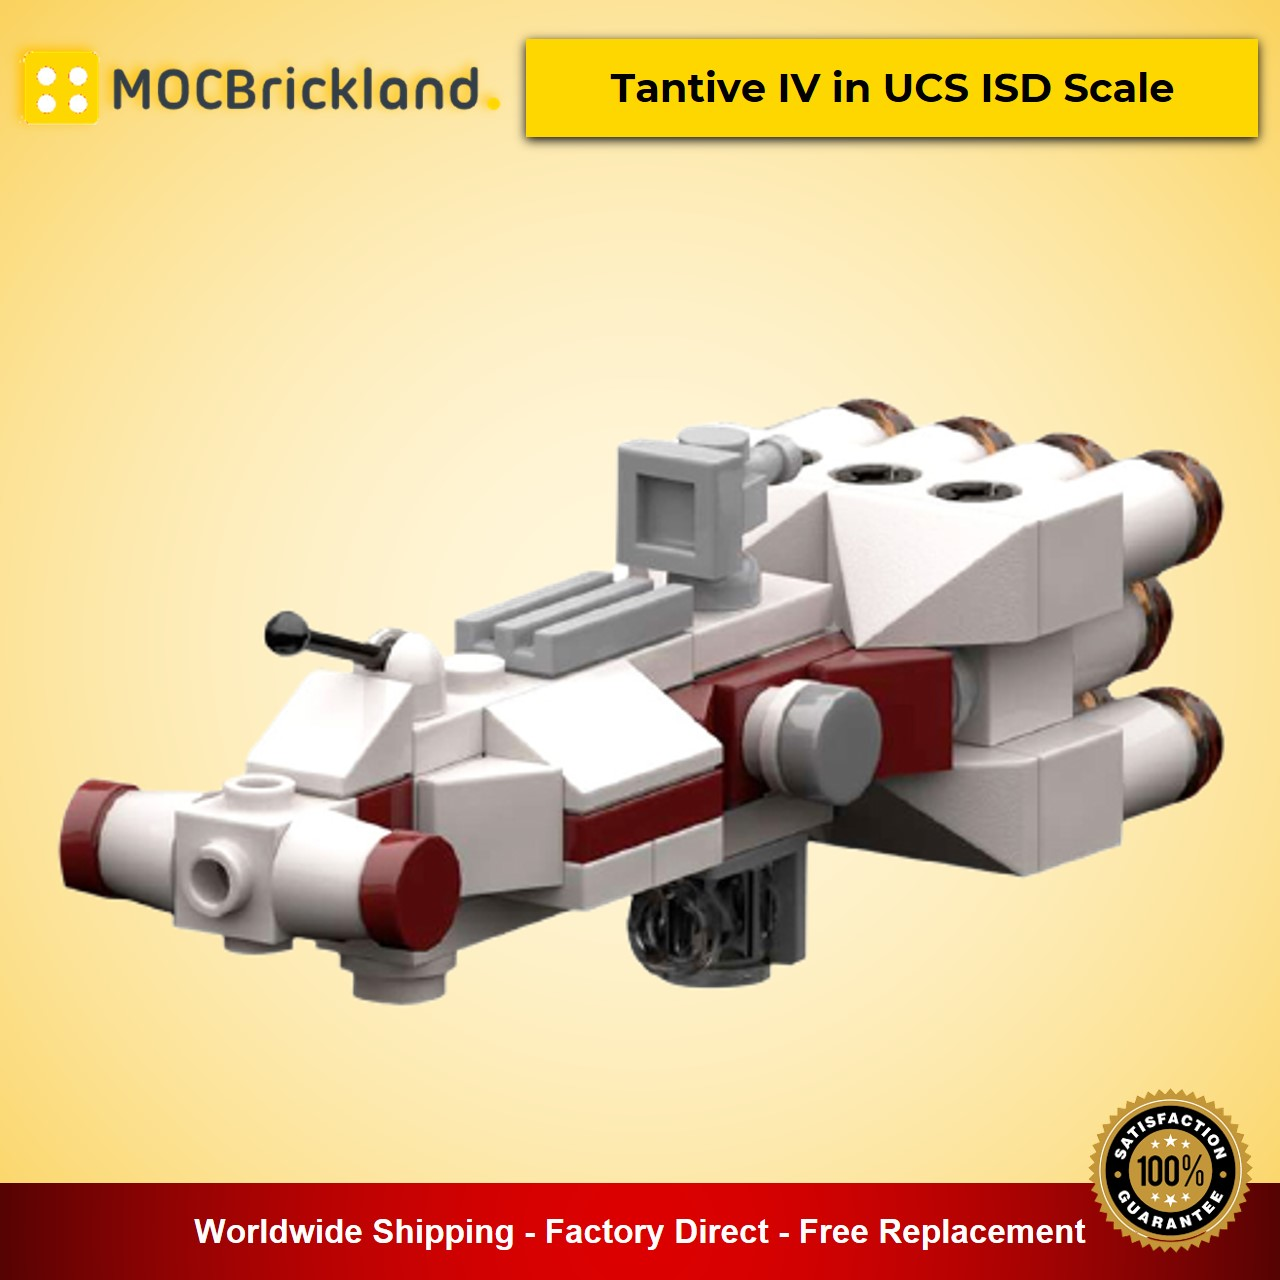 Tantive IV in UCS ISD Scale MOC-20584 Star Wars Designed By RobertBrick With 82 Pieces